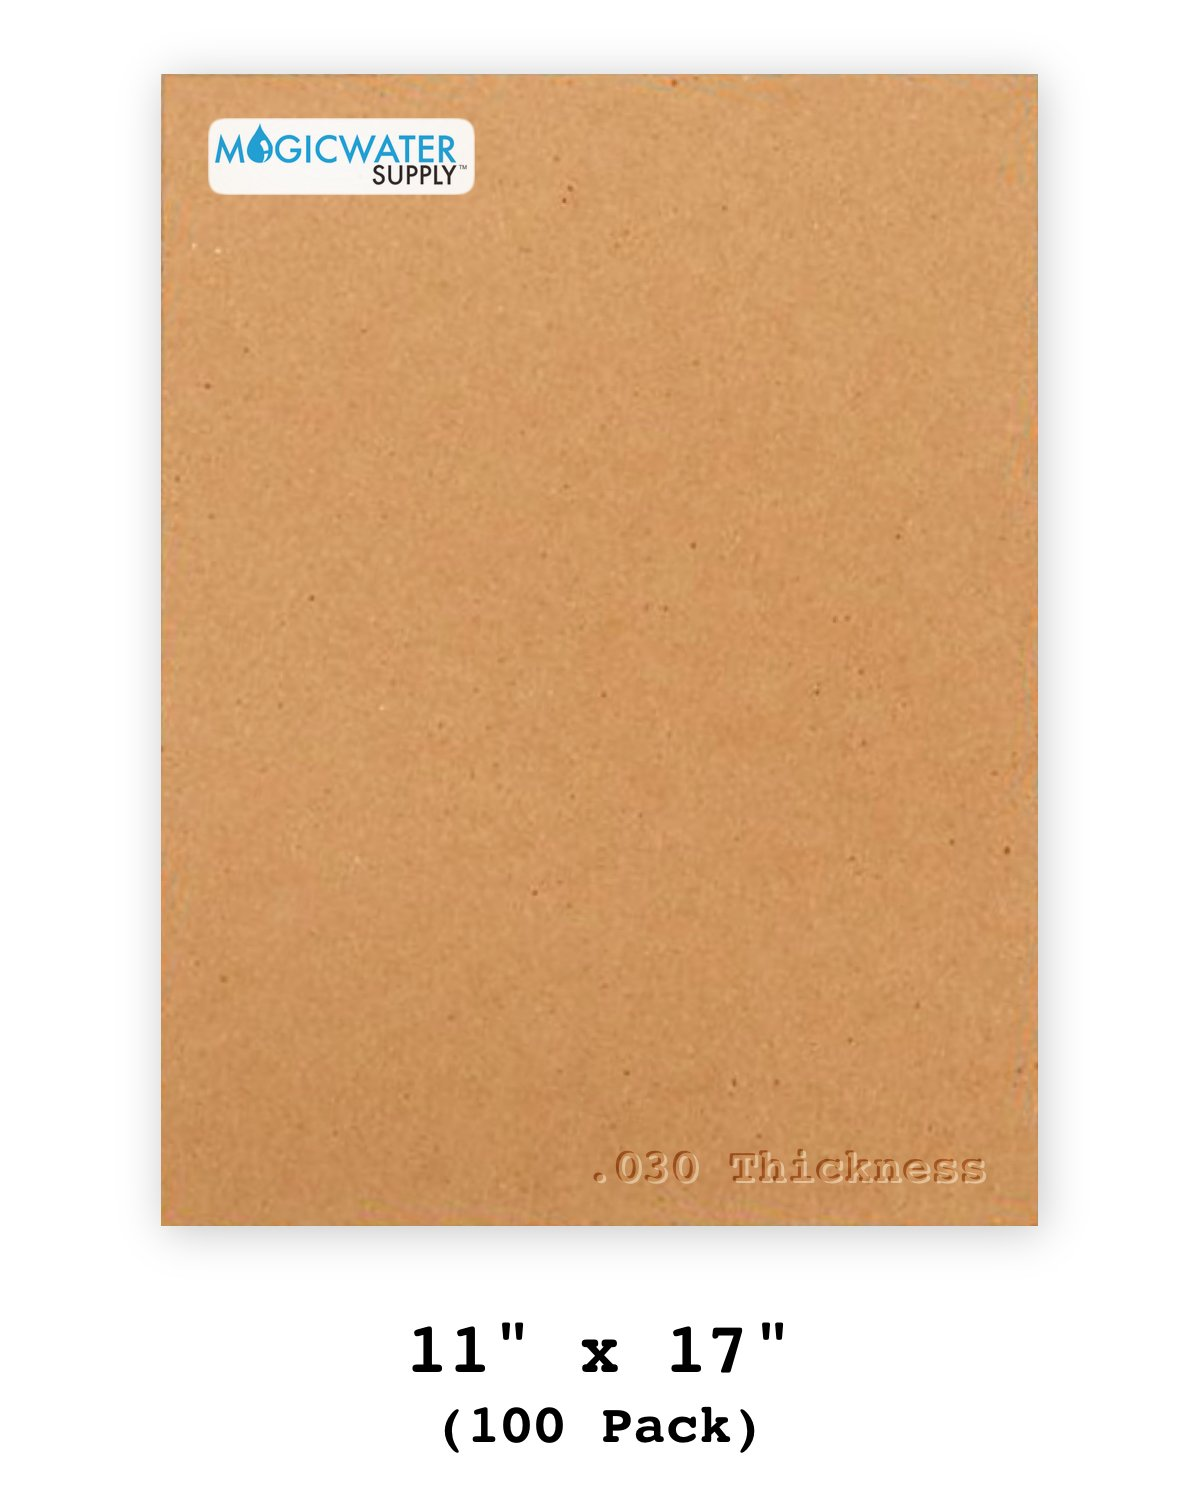 100 Sheets Chipboard 11 x 17 inch - 30pt (point) Medium Weight Brown Kraft Cardboard Scrapbook Sheets & Picture Frame Backing (.030 Caliper Thick) Paper Board | MagicWater Supply MWS 4336978510